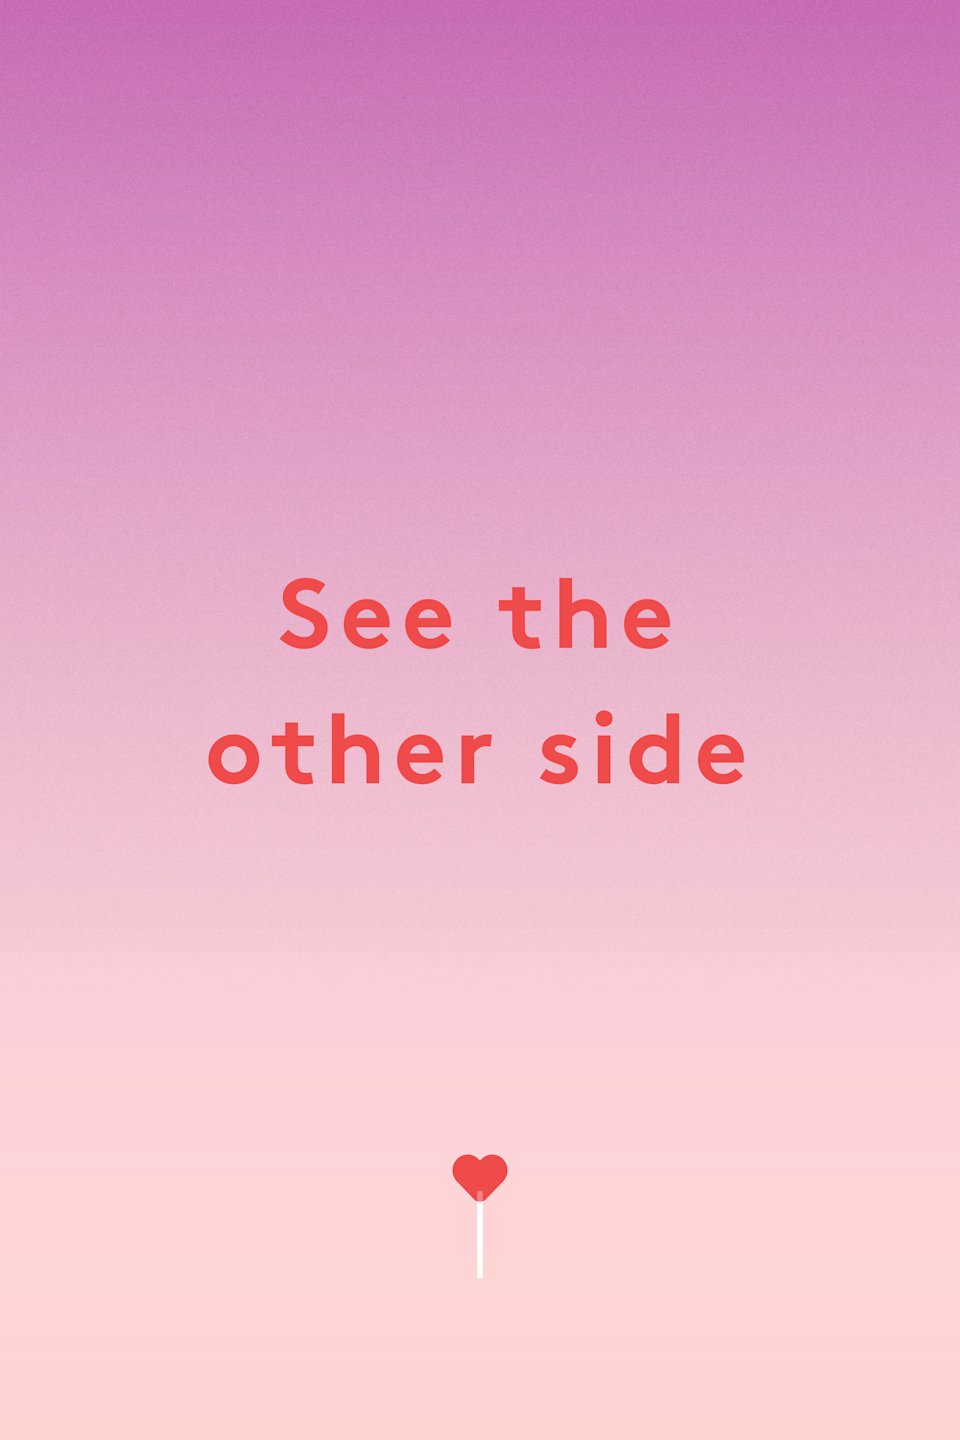 """One way to dig deeper into your feelings is to work on <a href=""""https://www.refinery29.com/en-gb/post-breakup-questions"""" rel=""""nofollow noopener"""" target=""""_blank"""" data-ylk=""""slk:making peace with your former partner"""" class=""""link rapid-noclick-resp"""">making peace with your former partner</a> (at least in your mind.) This can be helpful, because one of the things you have to do after a breakup is rebuild your identity without that person. Working through your feelings towards him or her can help you do that, says Rinzler.<br><br>He suggests an exercise he calls Just Like Me. You can do this as a simple thought exercise or you can write it down.<br><br>""""You begin by bringing an image of this person and sitting without judgment for 30 seconds, if possible,"""" he says. """"Then, list positive things that this person desires and add these words at the end: 'Just like me.'"""" For example, <em>James wants to feel desired...just like me. James longs for security...just like me. </em><br><br>Once you get to the end of the """"positives,"""" you can feel free to move into the messier areas: <em>James was arrogant...just like me. James slept with someone he shouldn't have...just like me. </em><br><br>Throughout the exercise, these statements will probably bring up a lot of emotions, but instead of pushing them aside or arguing with yourself about who's to blame, sit with them.<br><br>In most relationships, both parties have made a fair share of mistakes. This is a way to help you come to terms with that, Rinzler says. """"Then [you] can drop the contemplation and rest with whatever feelings have emerged from the exercise. It doesn't negate that this person betrayed you, but ideally you move toward some form of understanding."""""""